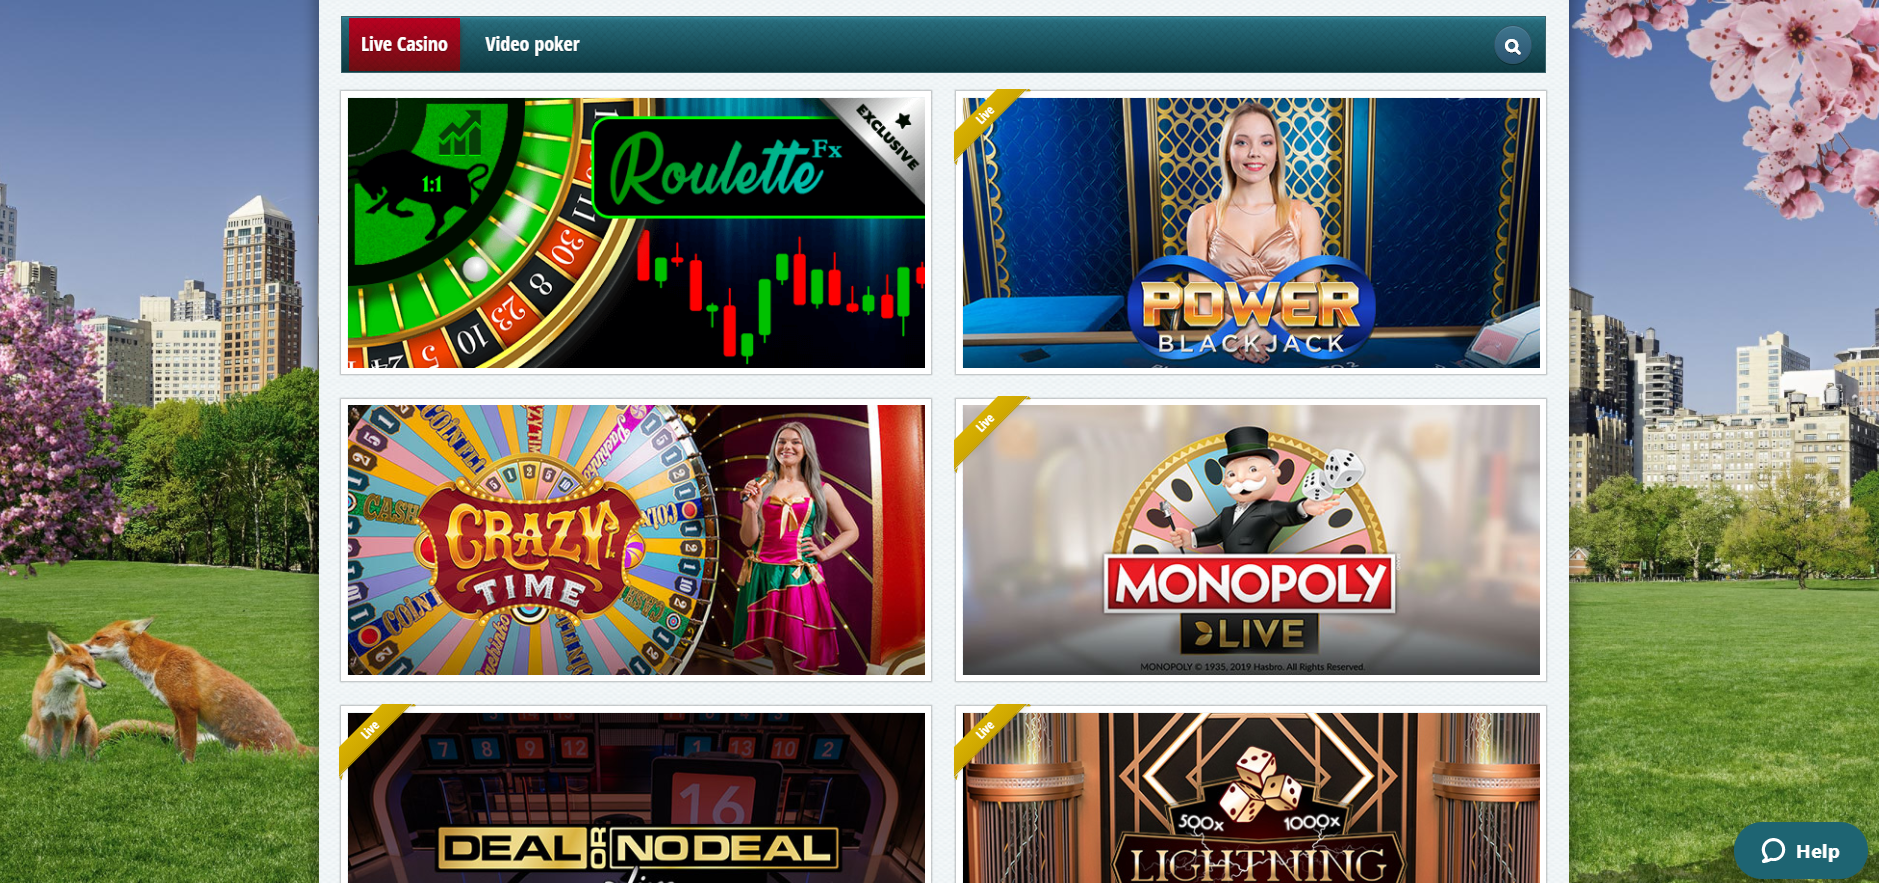 EuroSlots Casino Review 2021 – 100% Bonus up to €50! | GoodLuckMate